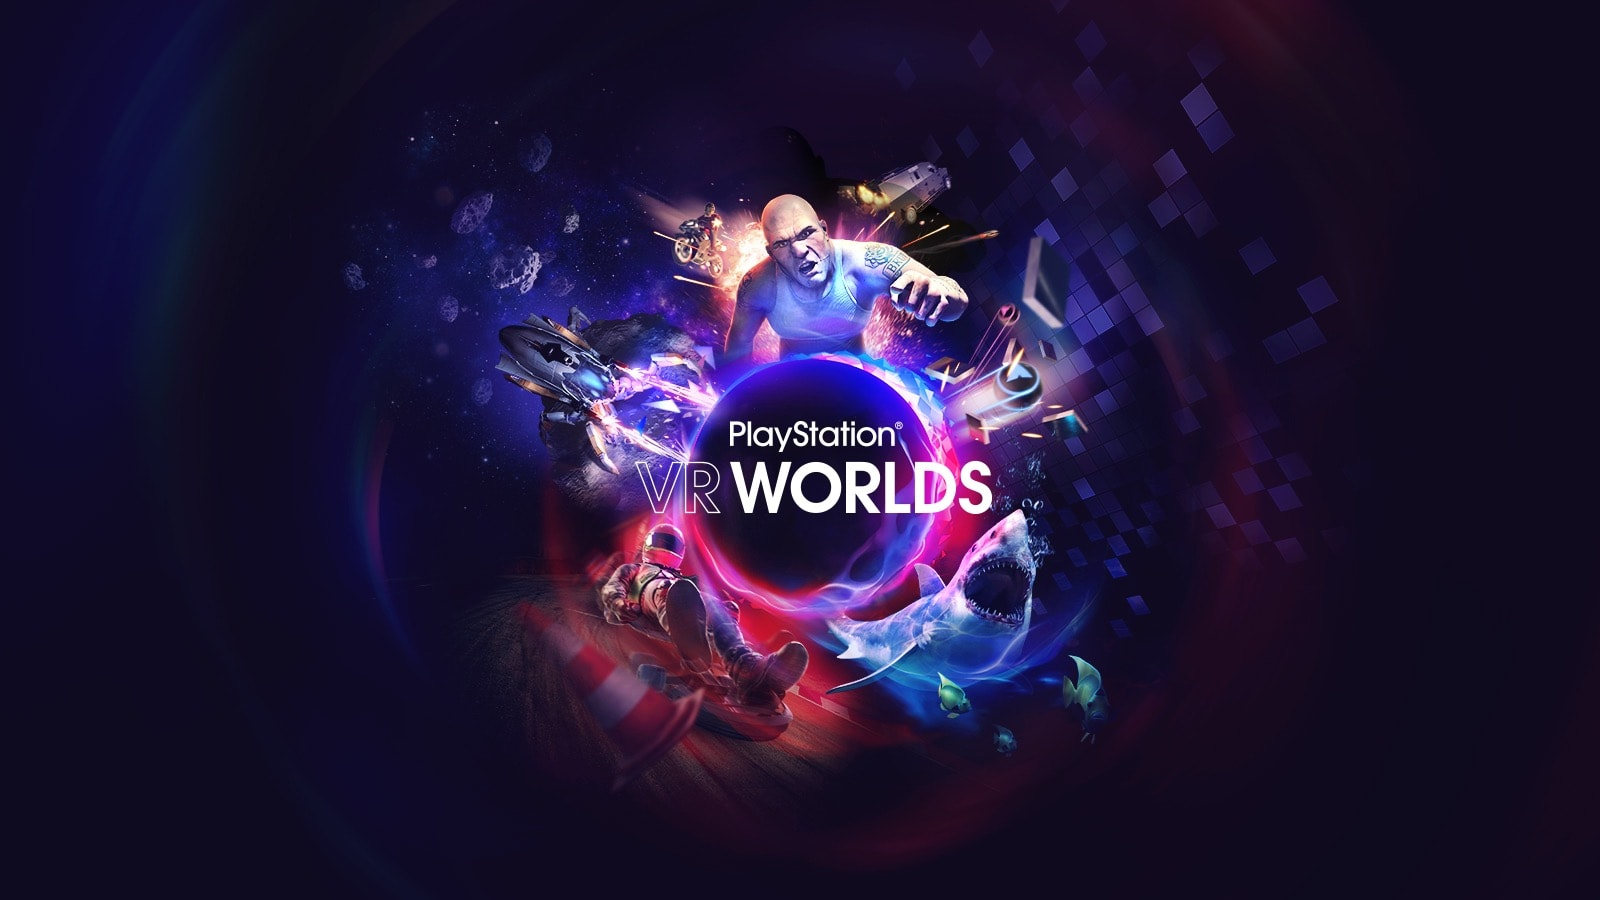 vr worlds cover